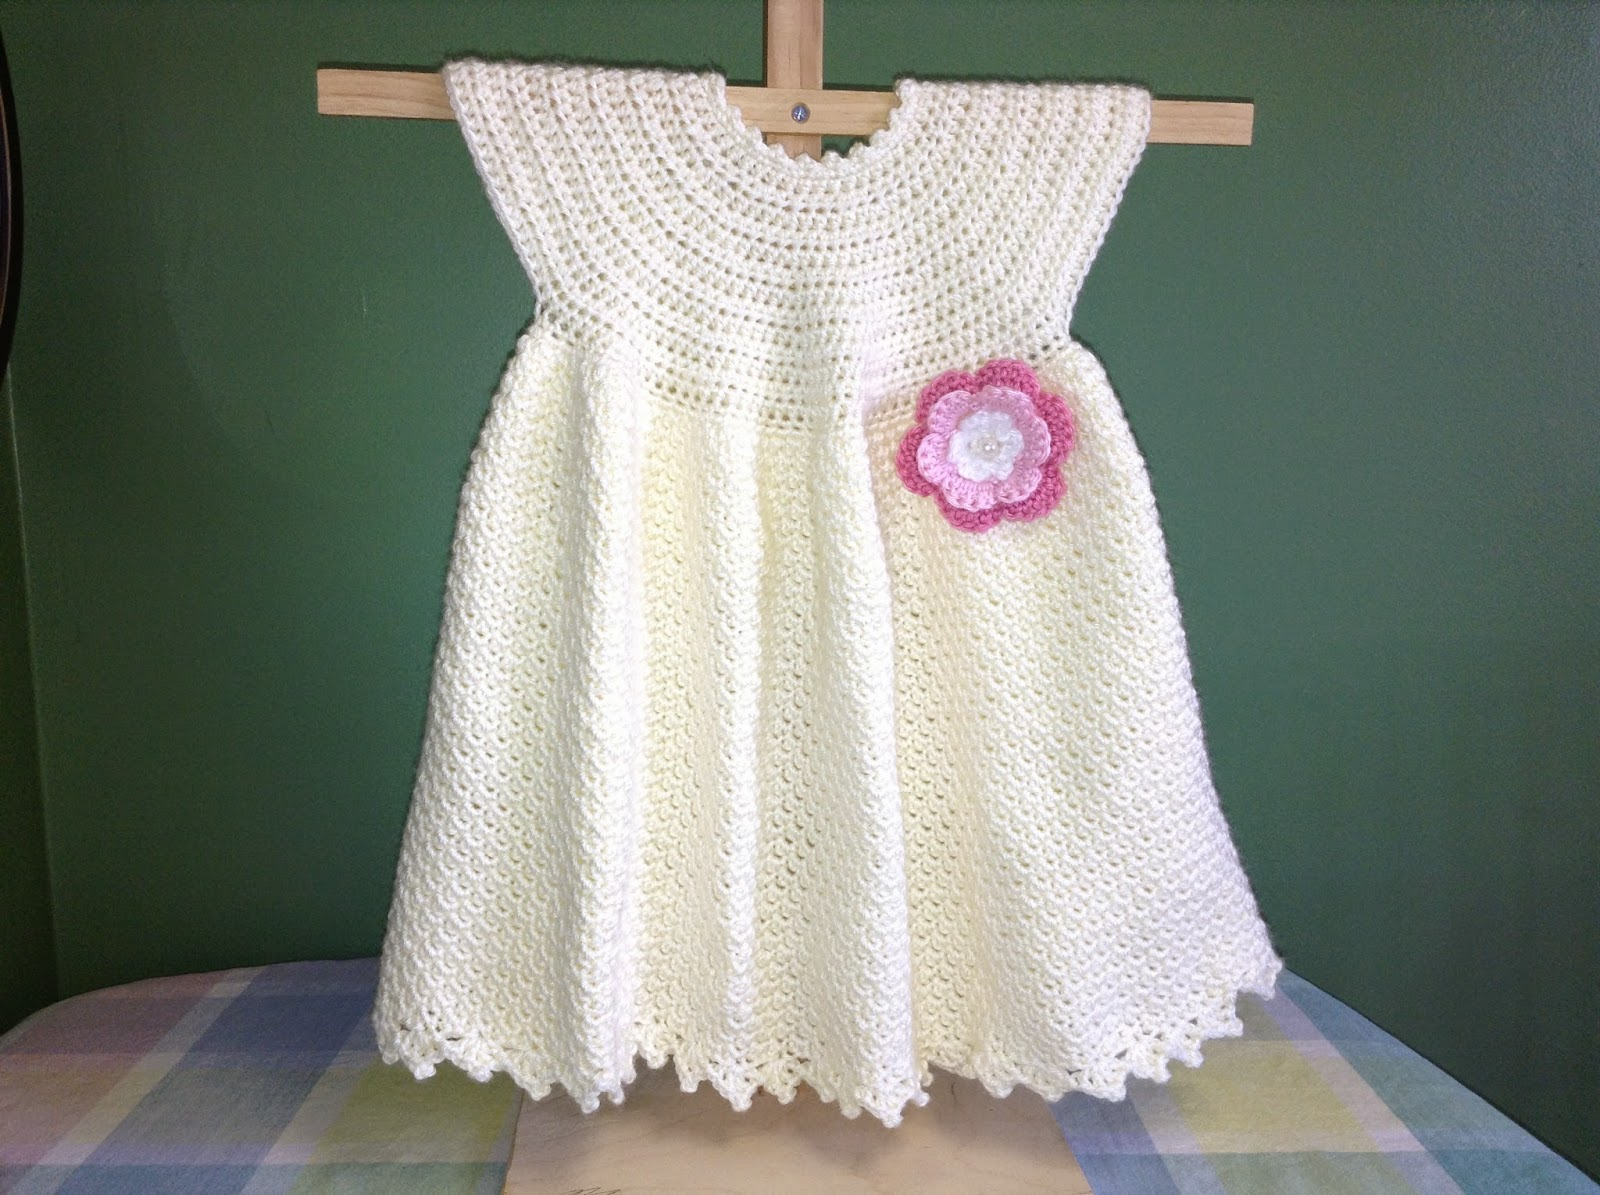 Crochet Baby Dress Free Pattern By Kitty For K : Annas Free Baby Crochet Dress Patterns - Inspiration and ...